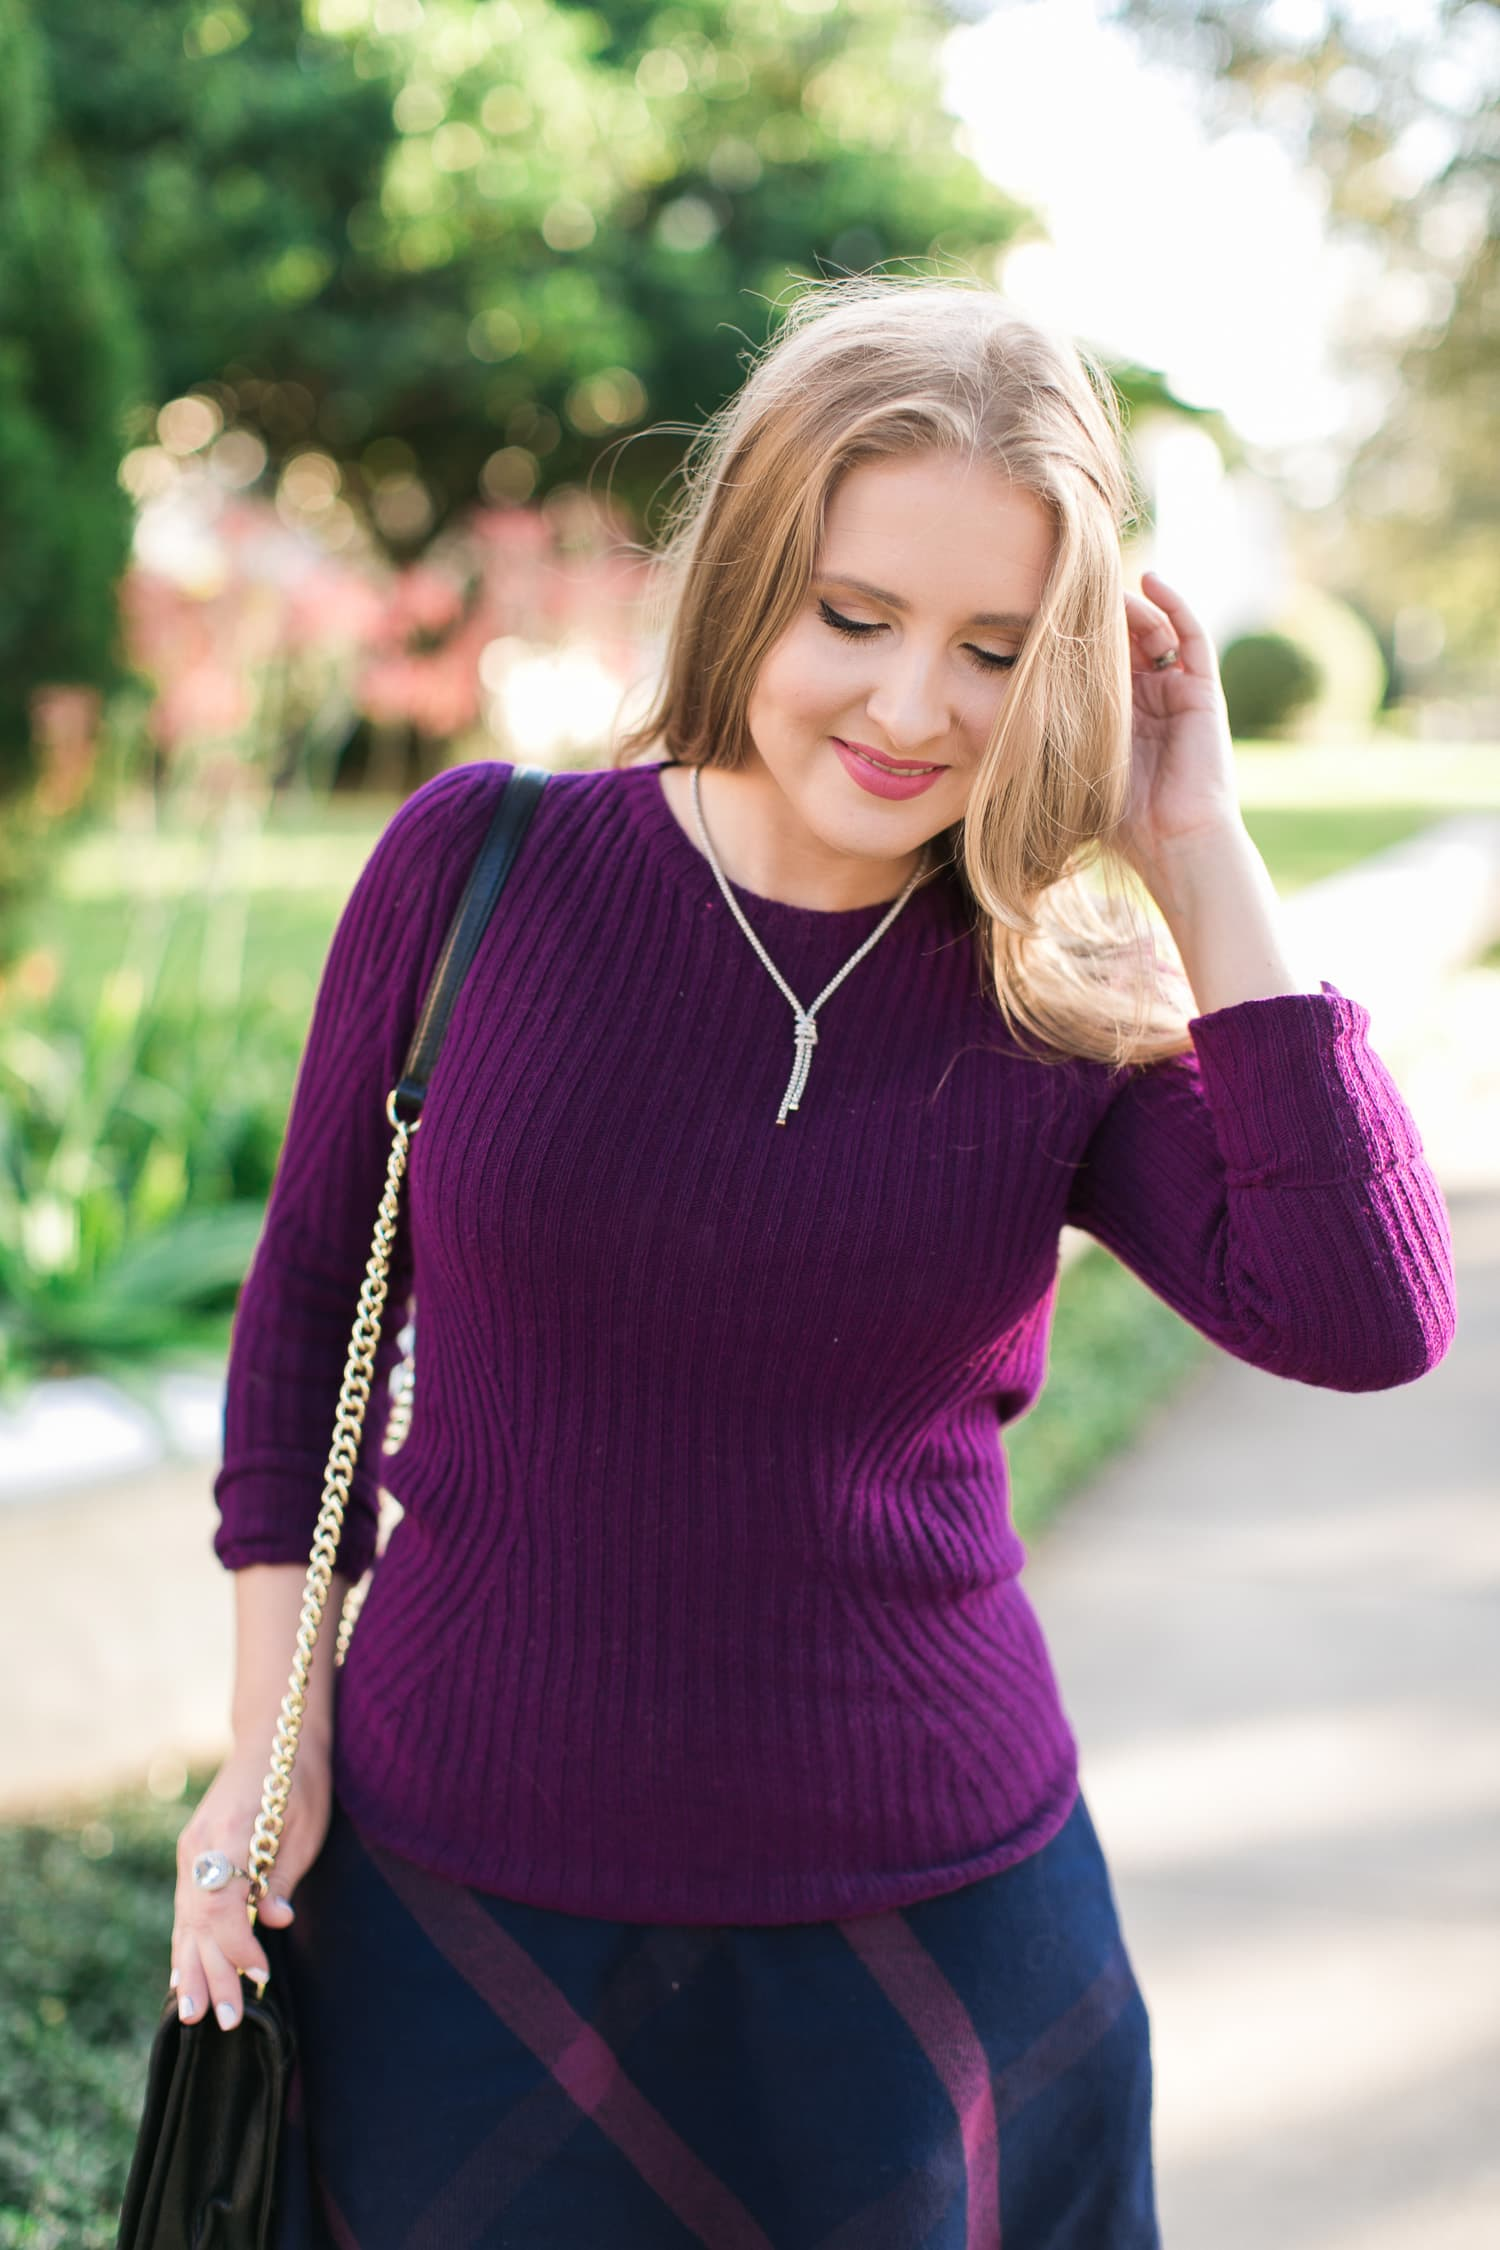 3 Easy Ways to Style a Sweater and Skirt | Ashley Brooke Nicholas